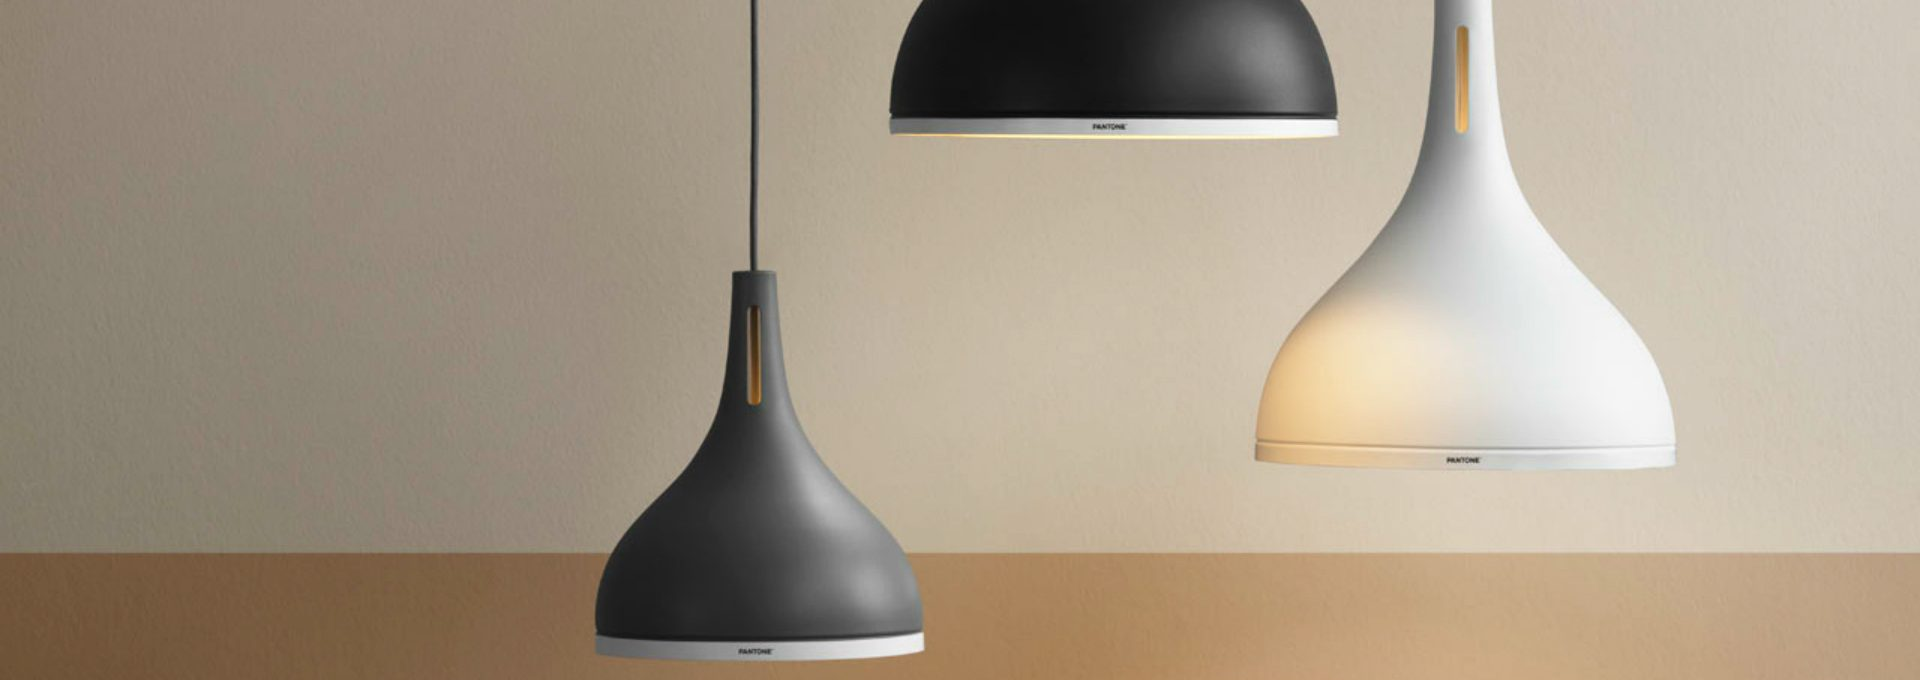 Get to Know the Modern PANTONE's Lighting Collection with e3light - Modern Lamps - Contemporary Lamps ➤ Discover the season's newest design news and inspiration ideas. Visit Daily Design News and subscribe our newsletter! #dailydesignnews #designnews #ModernLamps #ContemporaryLamps #e3light #pantone